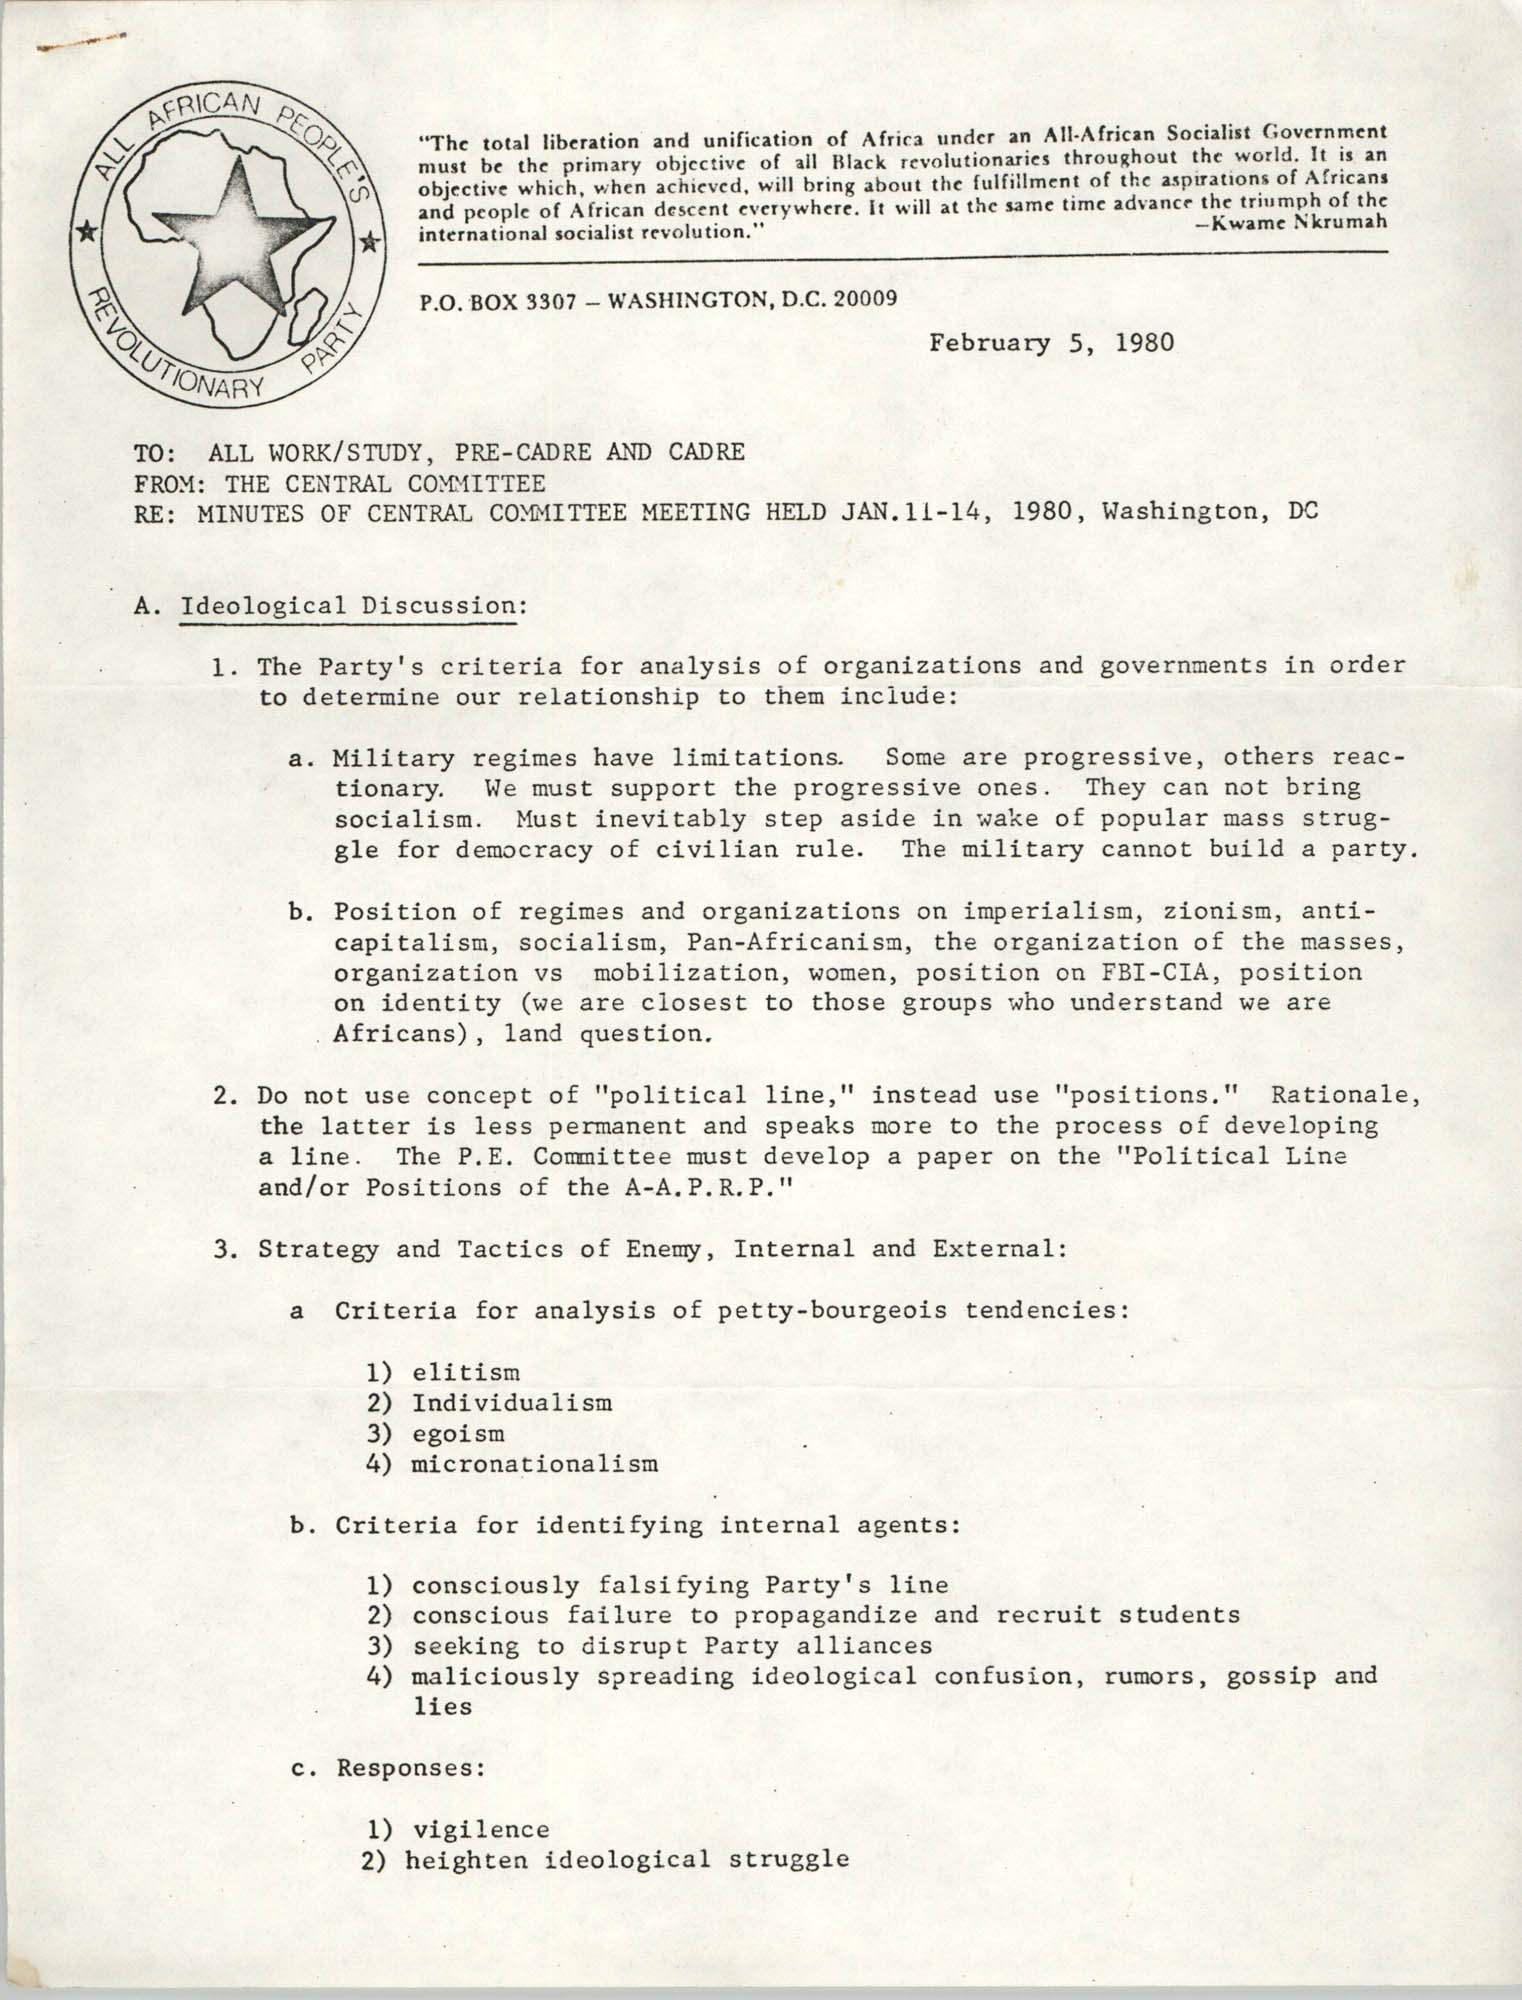 All African People's Revolutionary Party Memorandum, February 5, 1980